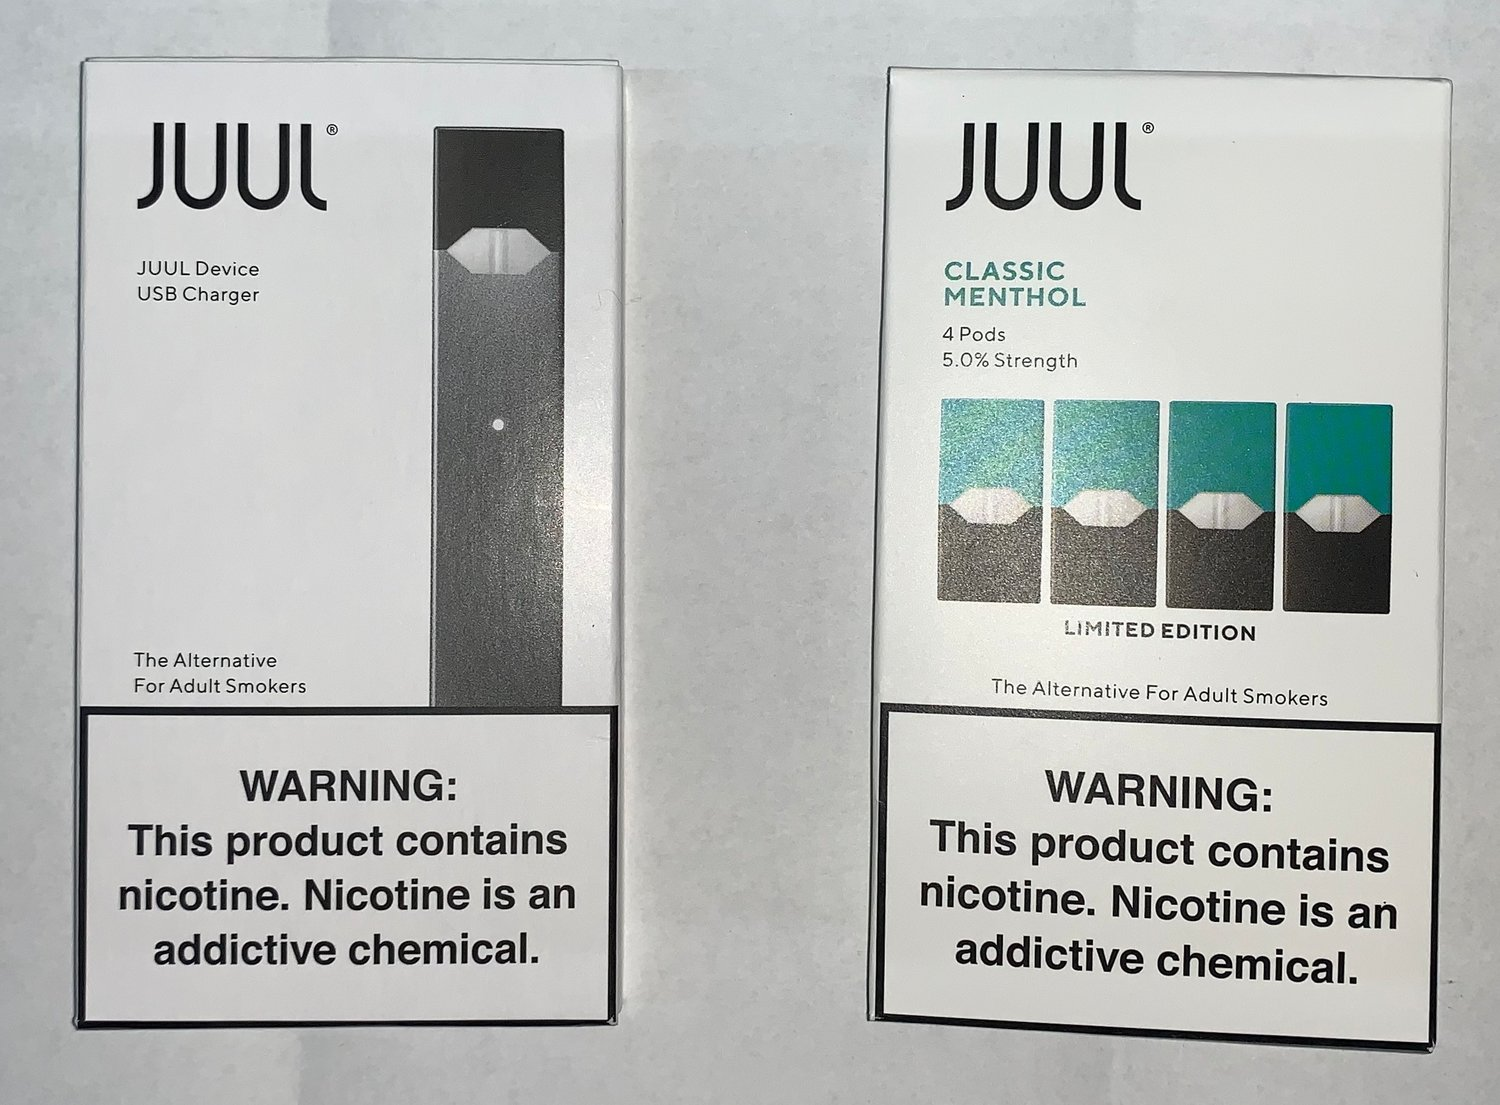 Among the items told were JUUL vaping devices and liquid nicotine pads, police said.